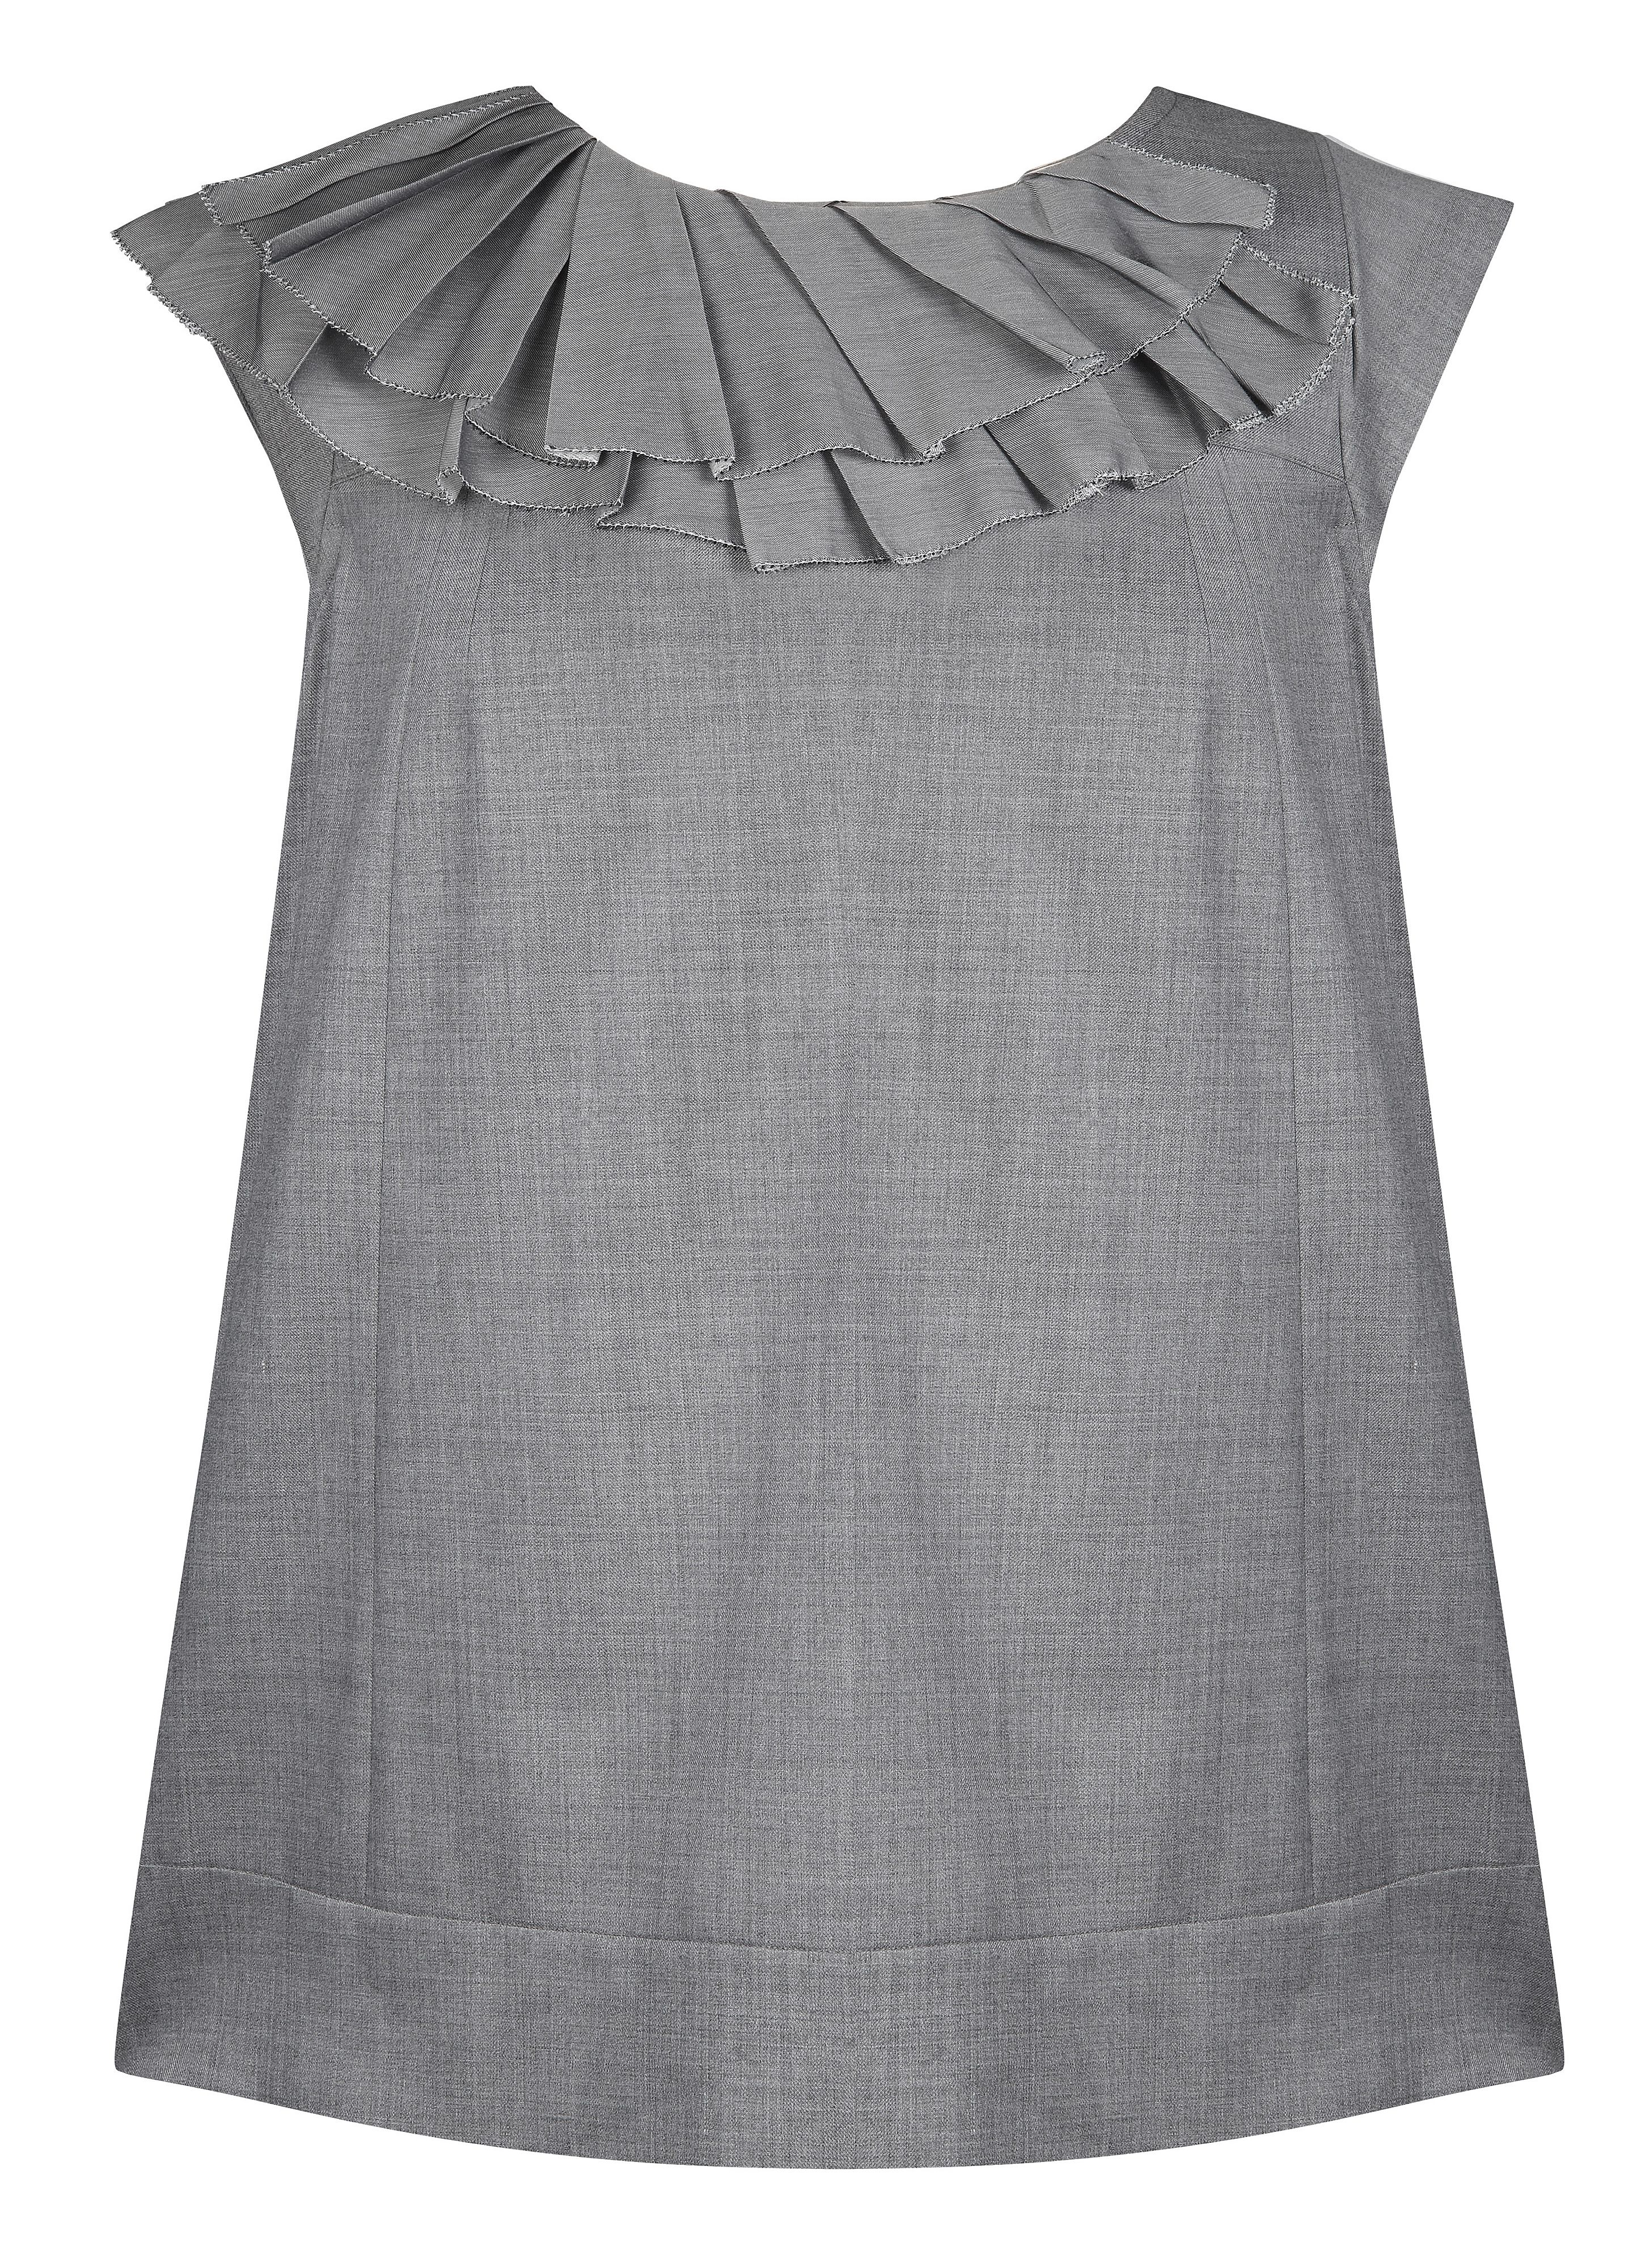 Jesire Cap sleeve ruffle collar blouse Urban grey product image